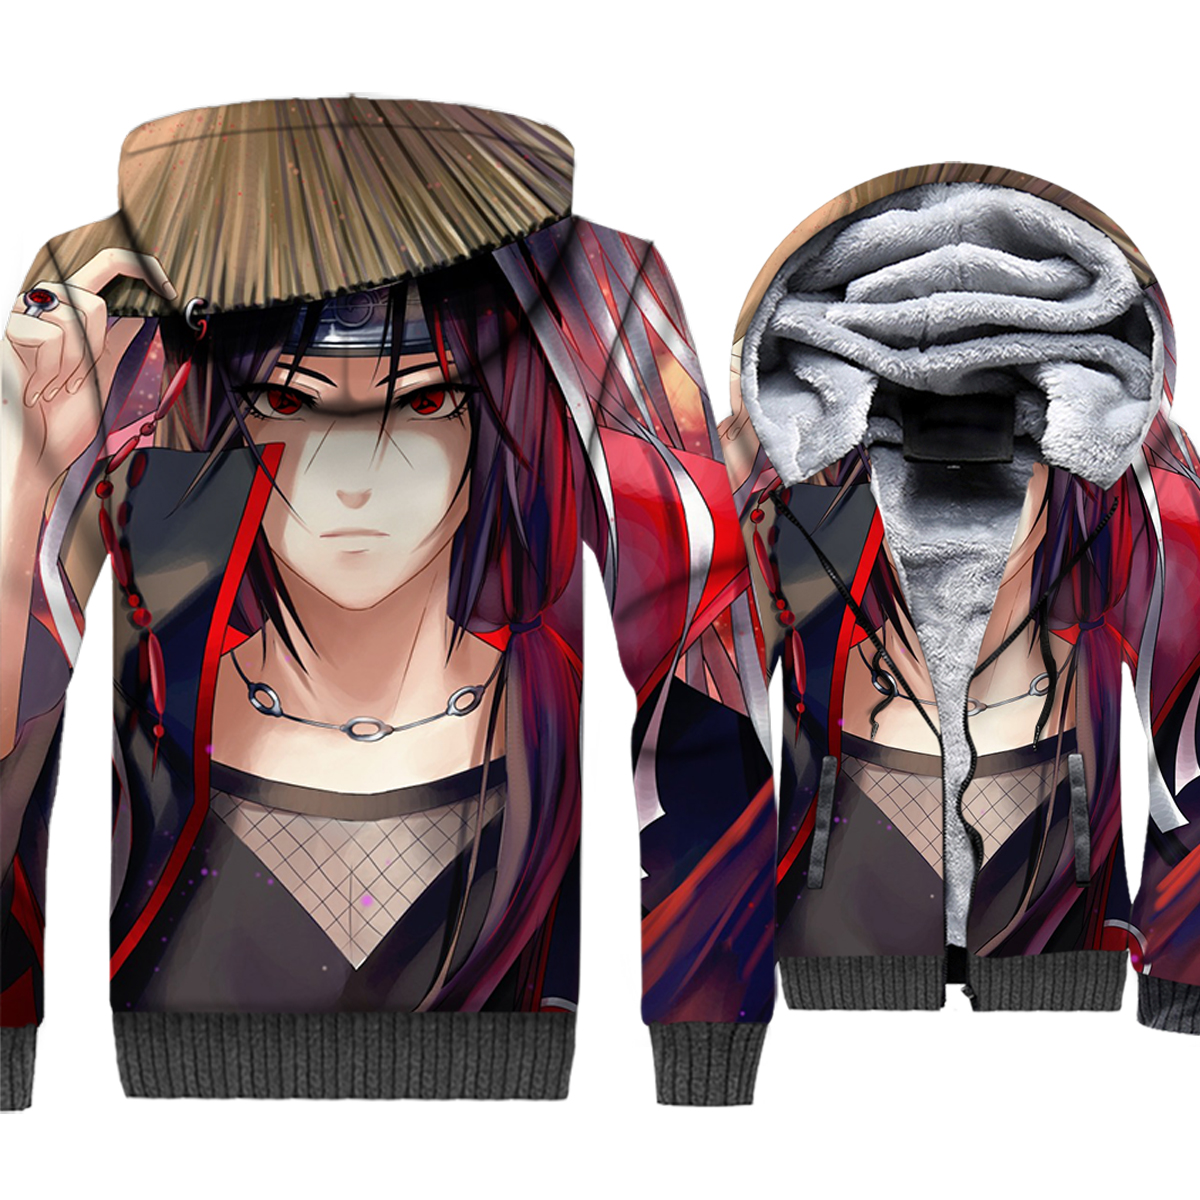 2019 winer Thick warm coats Anime Naruto Uchiha Itachi sweatshirts men casual wool liner jackets hooded 3D Print hoodies M-5XL